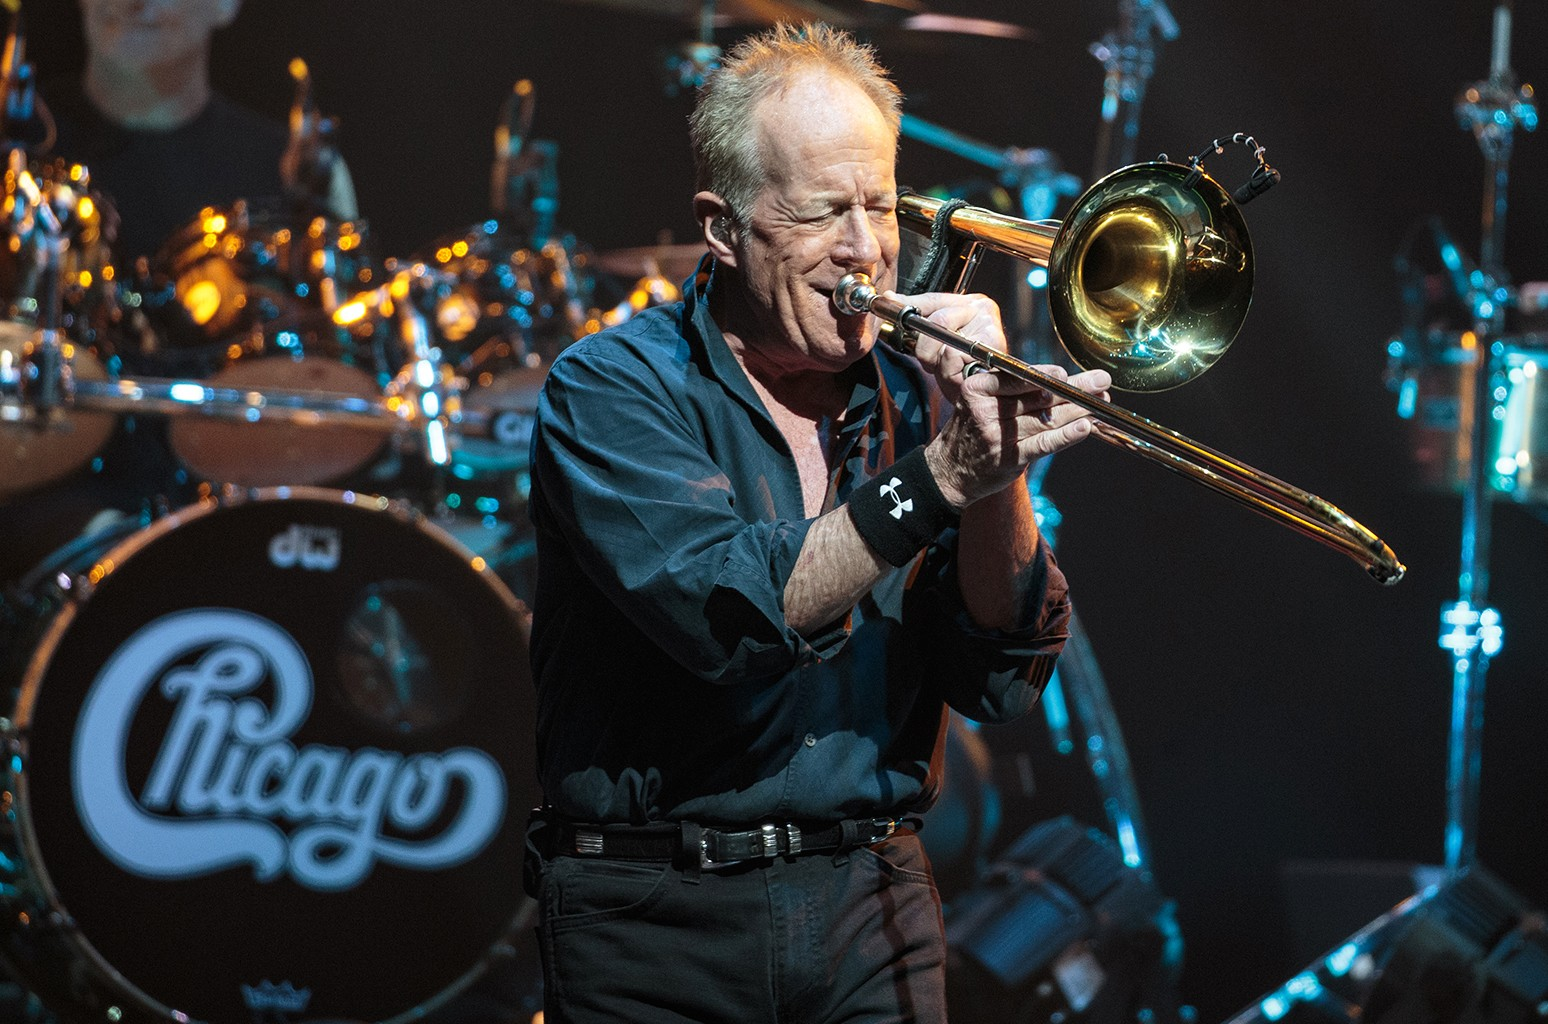 Jimmy Pankow of Chicago performs  at ACL Live on May 27, 2016 in Austin, Texas.